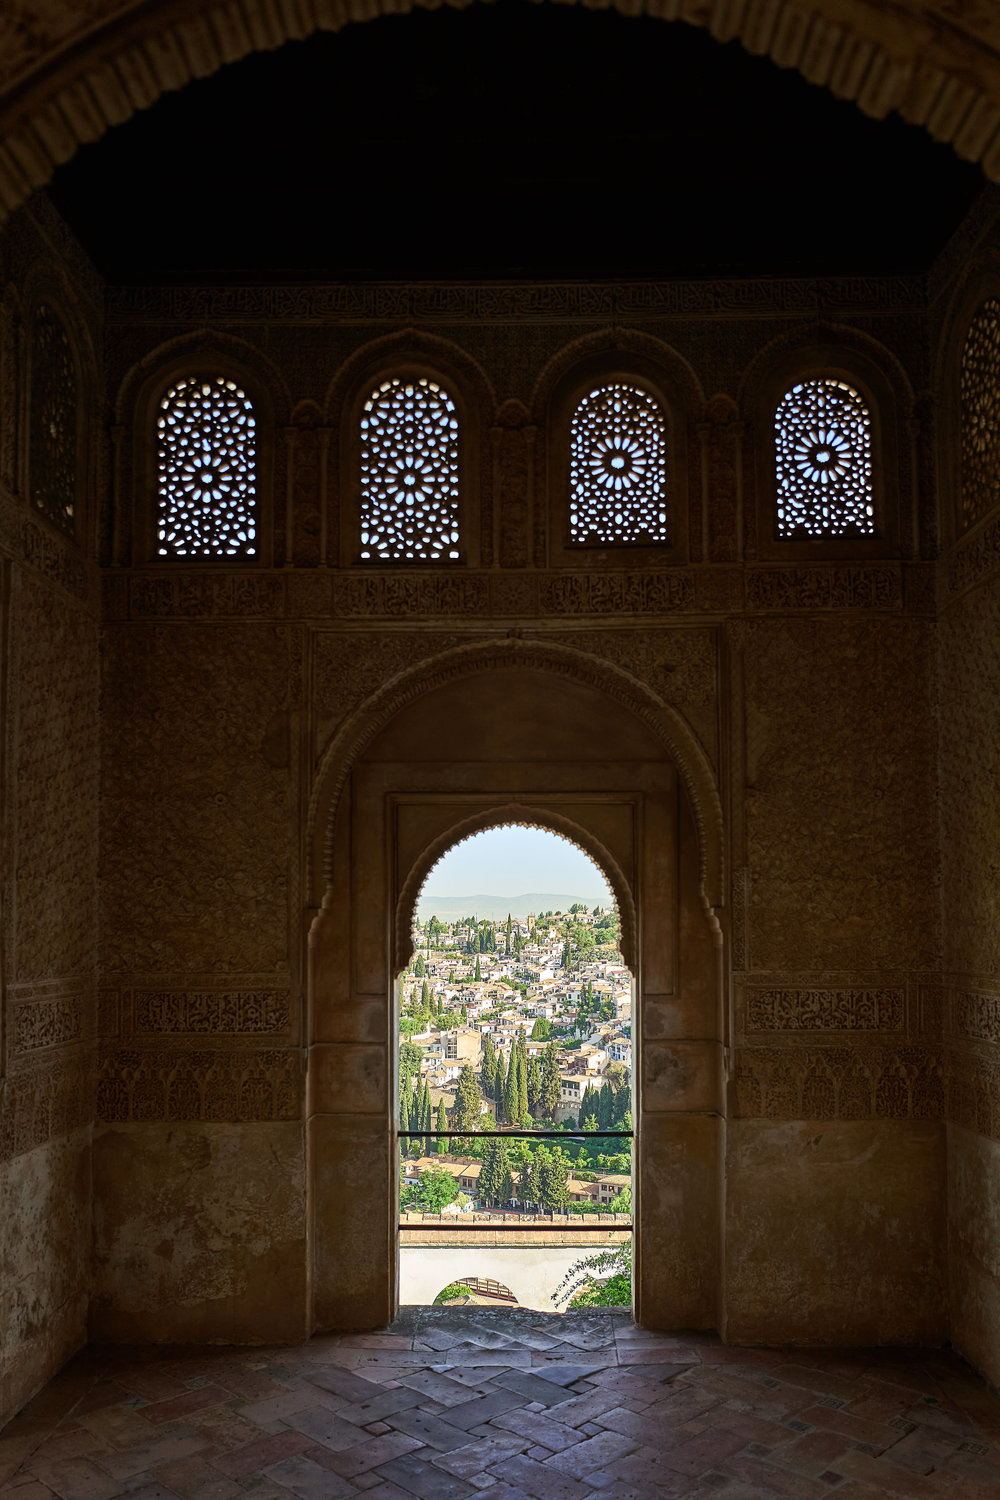 Granada as seen from one of the rooms in the Generalife - Leica Q